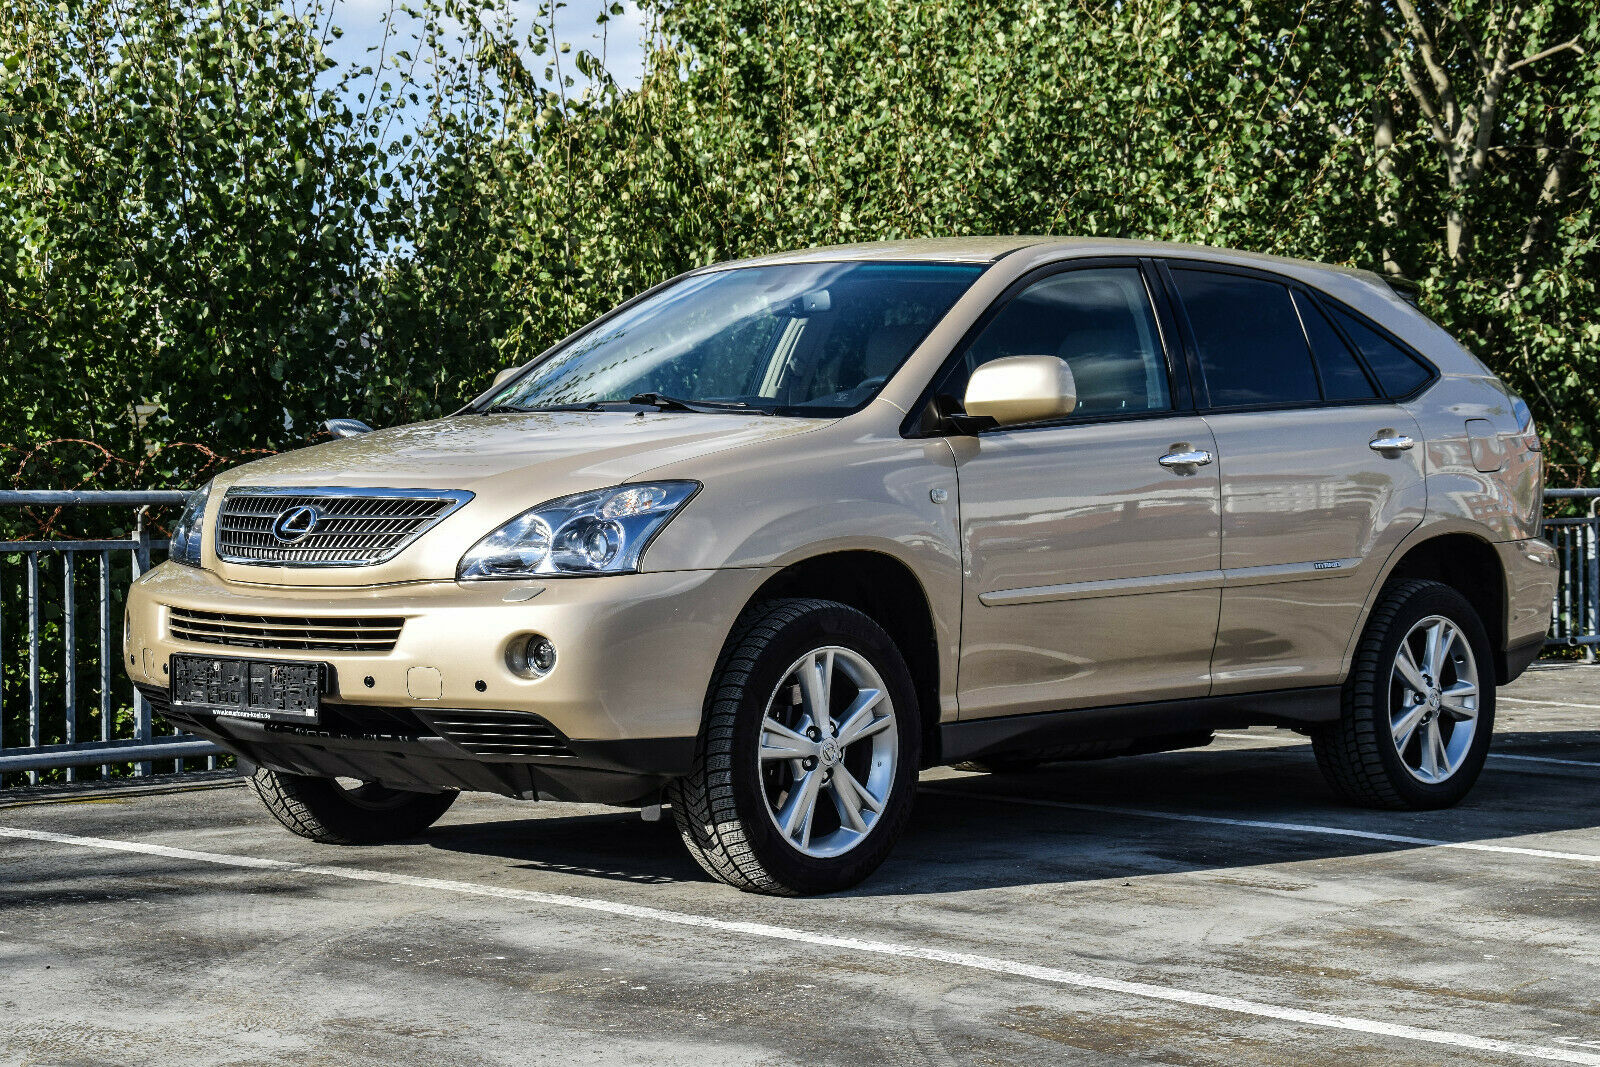 LEXUS RX 400h (hybrid) Executive